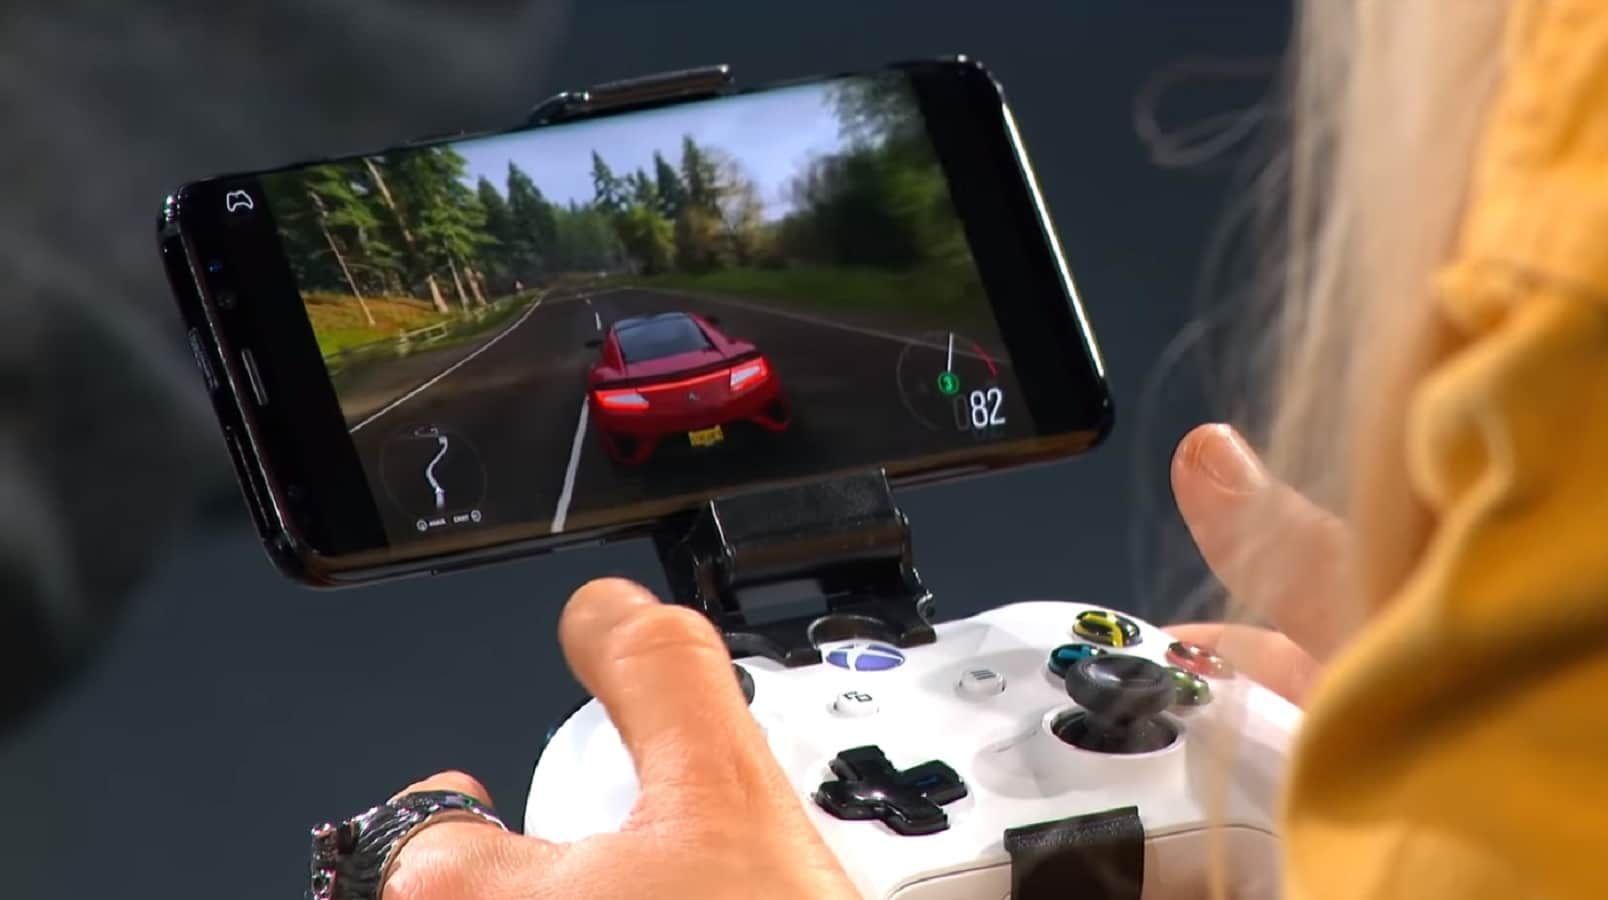 Here's Forza Horizon 4 running on an Android phone through